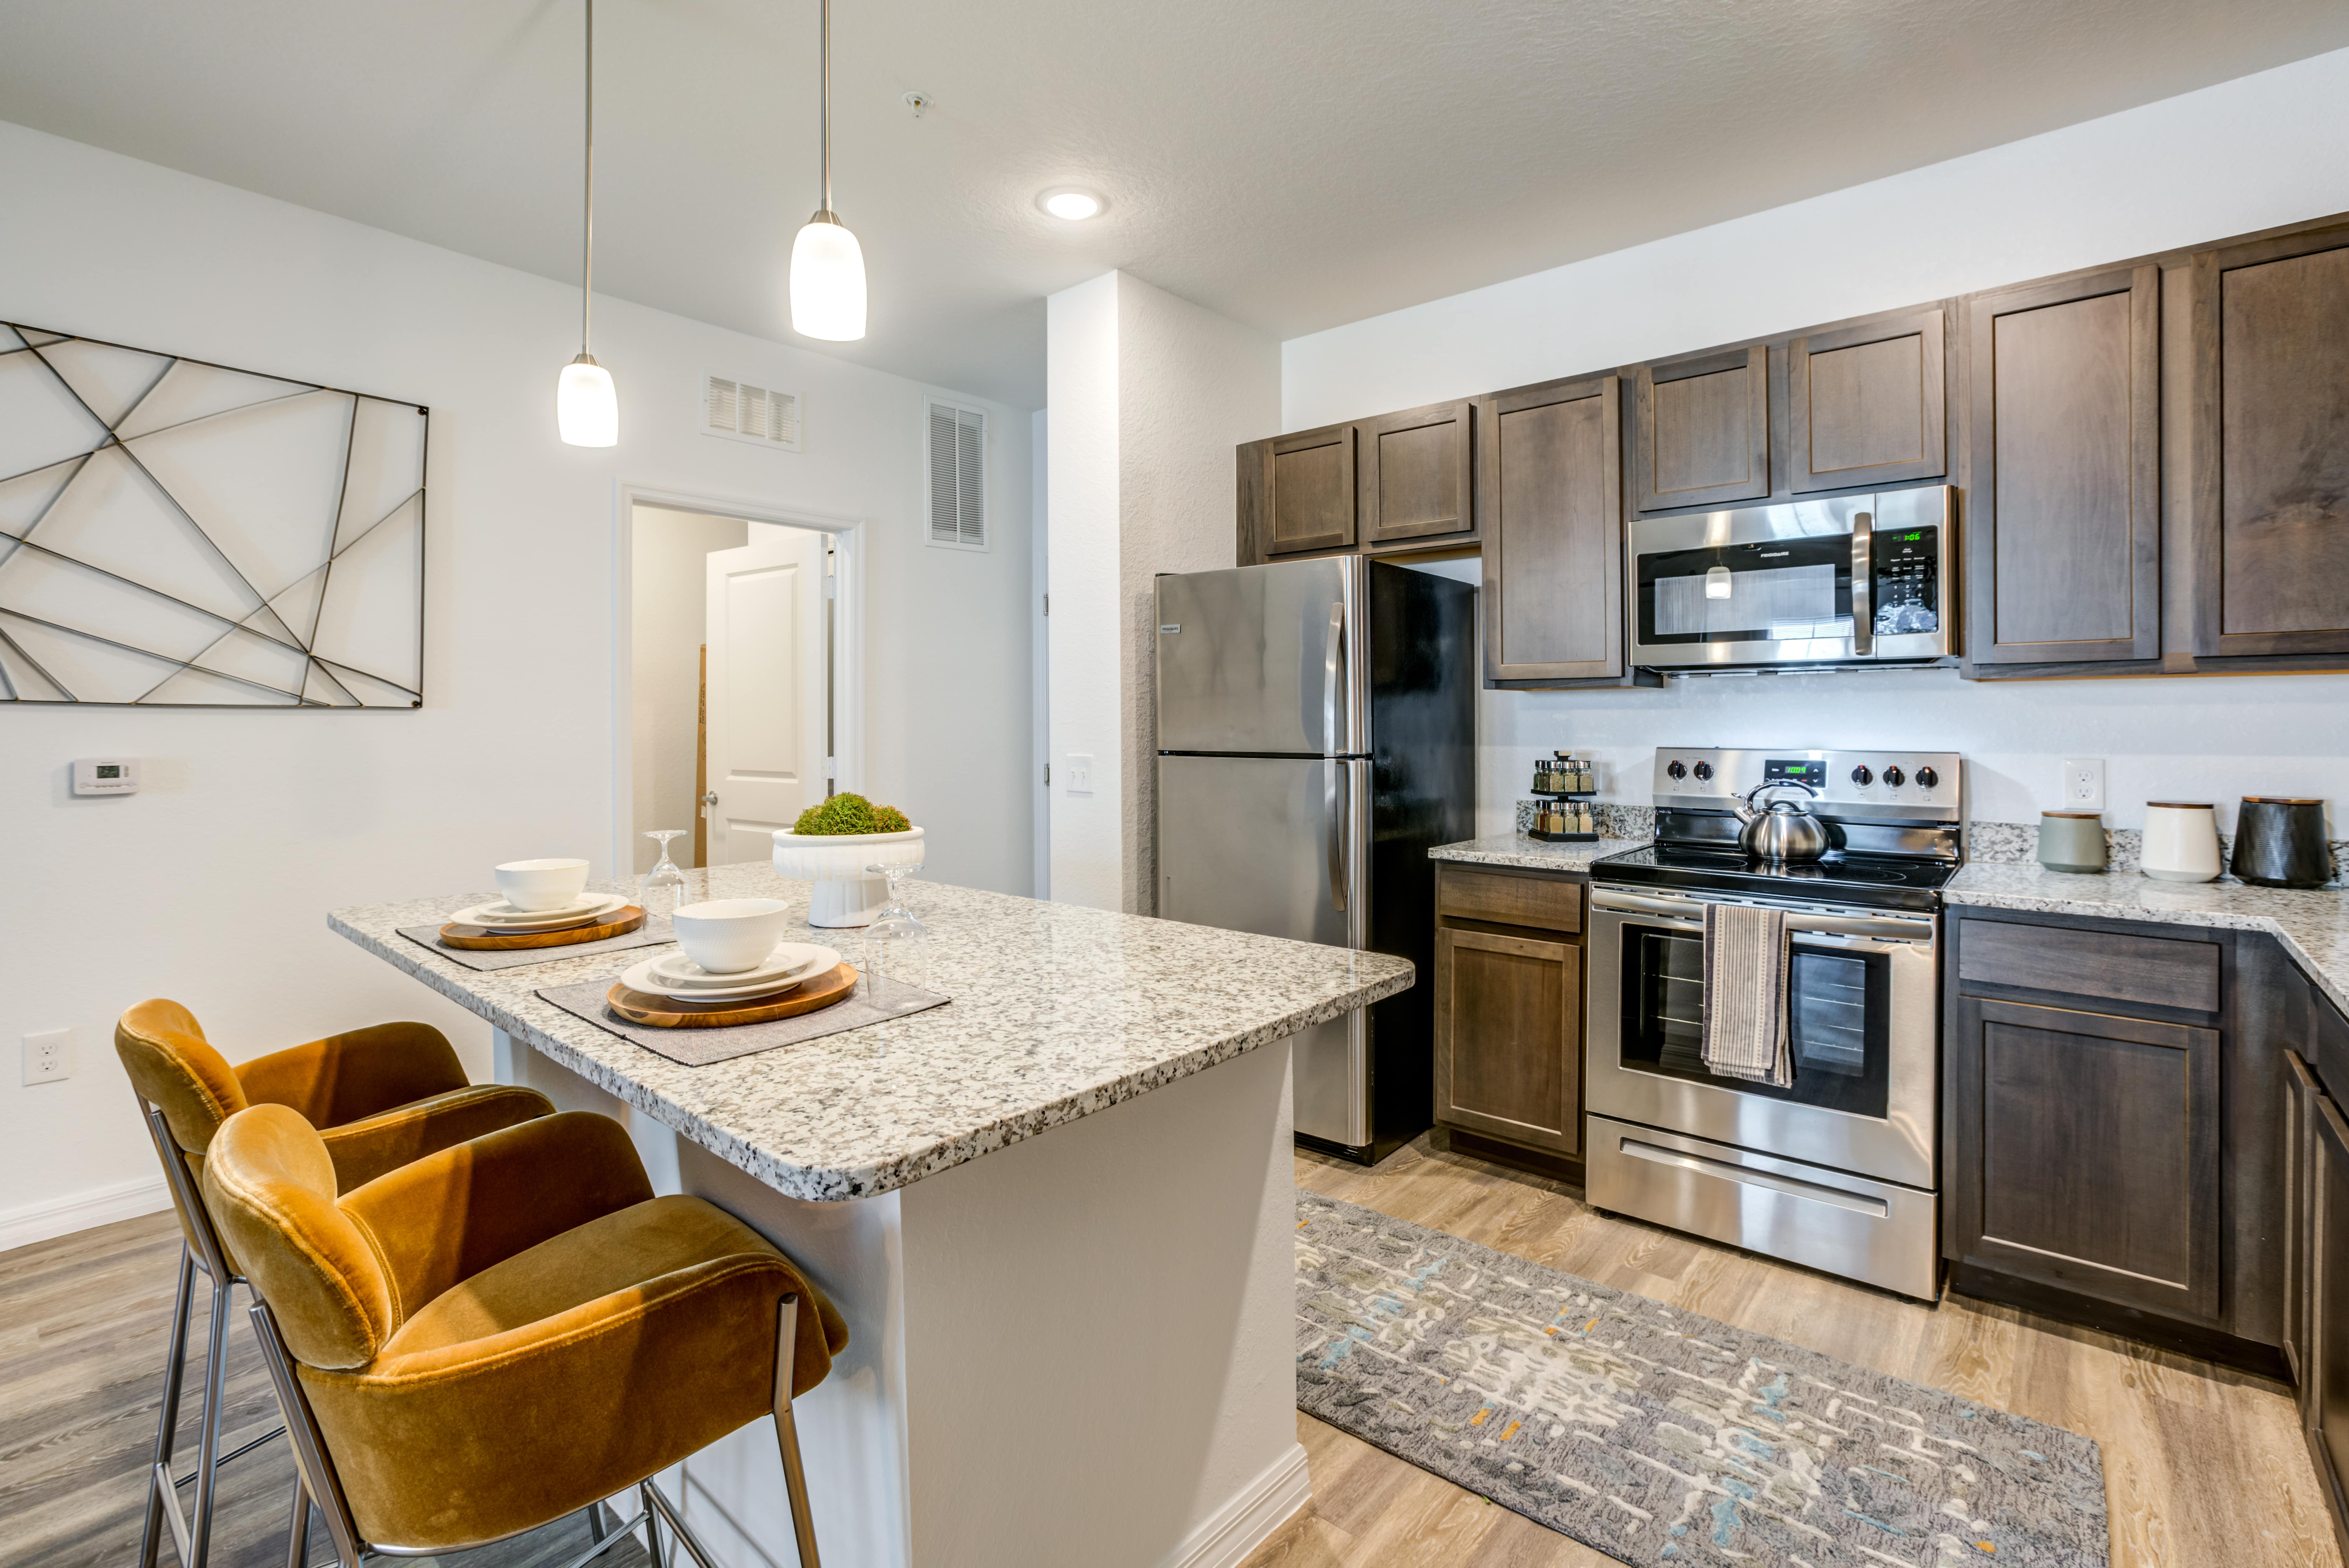 Gourmet kitchen with granite counter tops and kitchen island